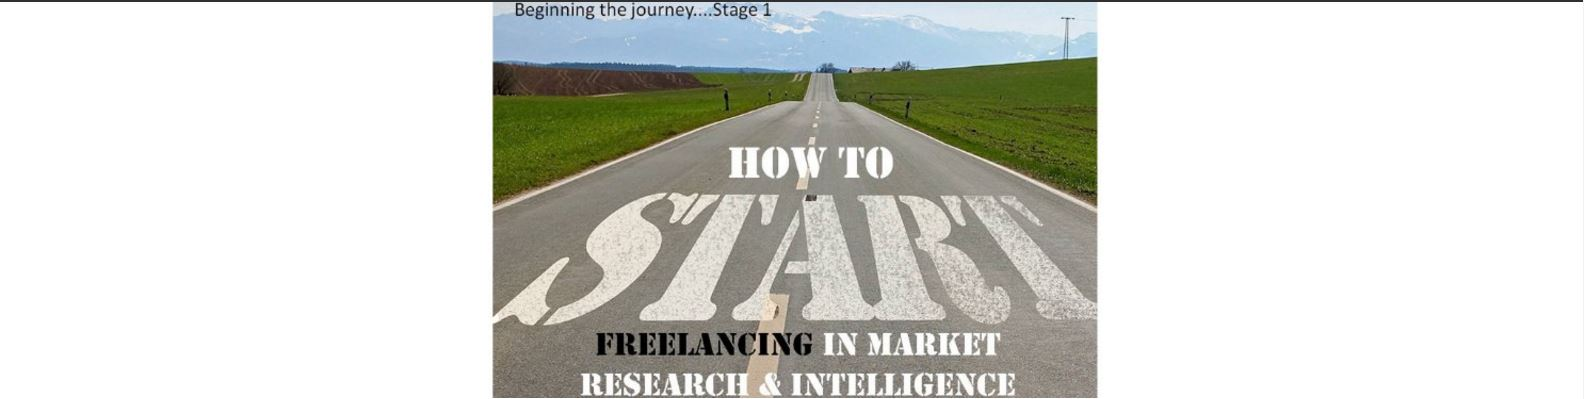 how to start freelancing as a market researcher